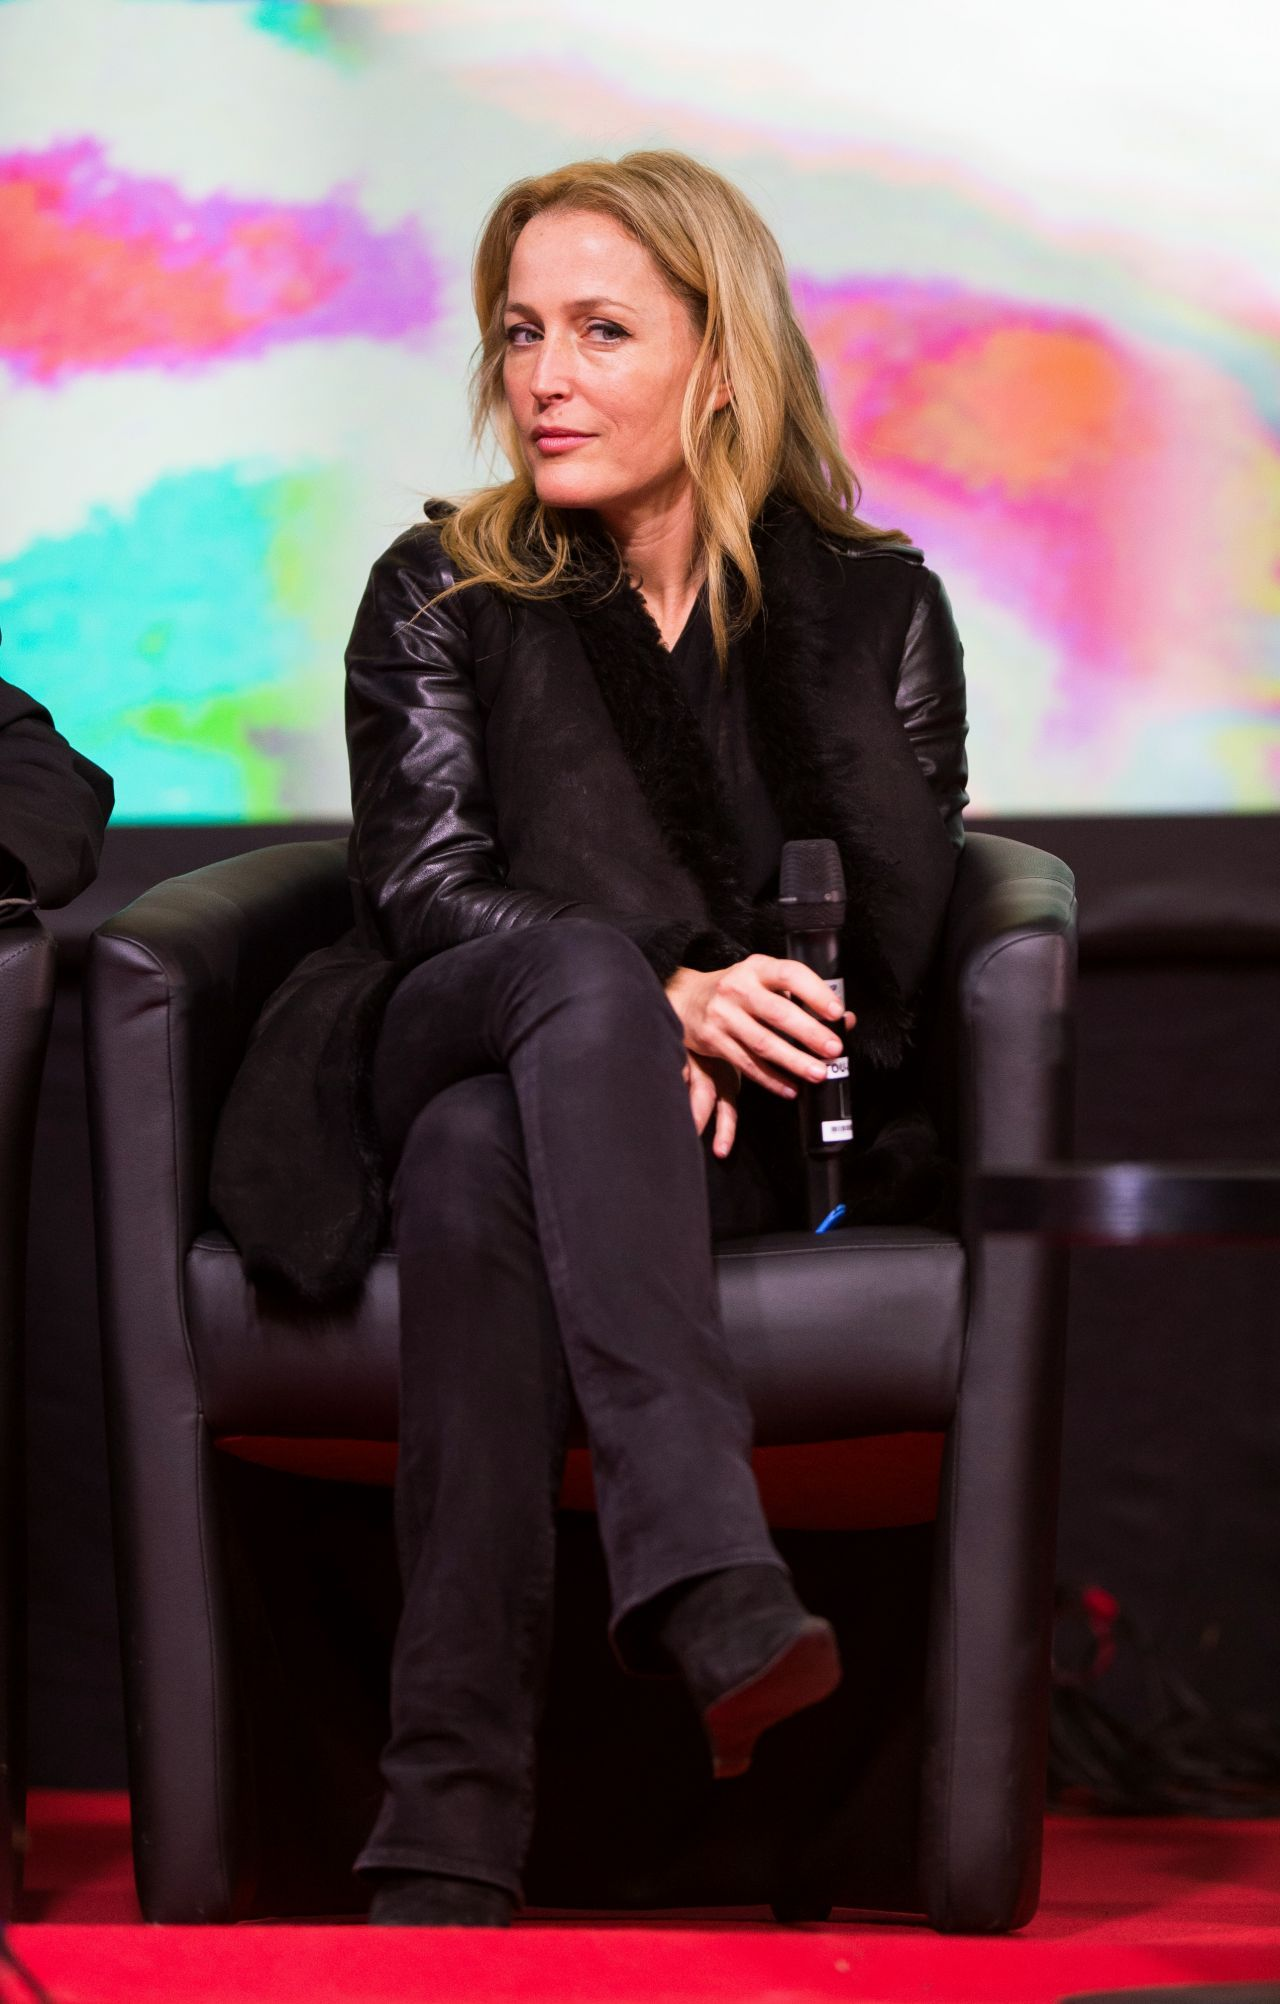 gillian-anderson-the-x-files-meet-and-greet-promo-in-toulouse-france-november-2015_2.jpg (1280×2004)